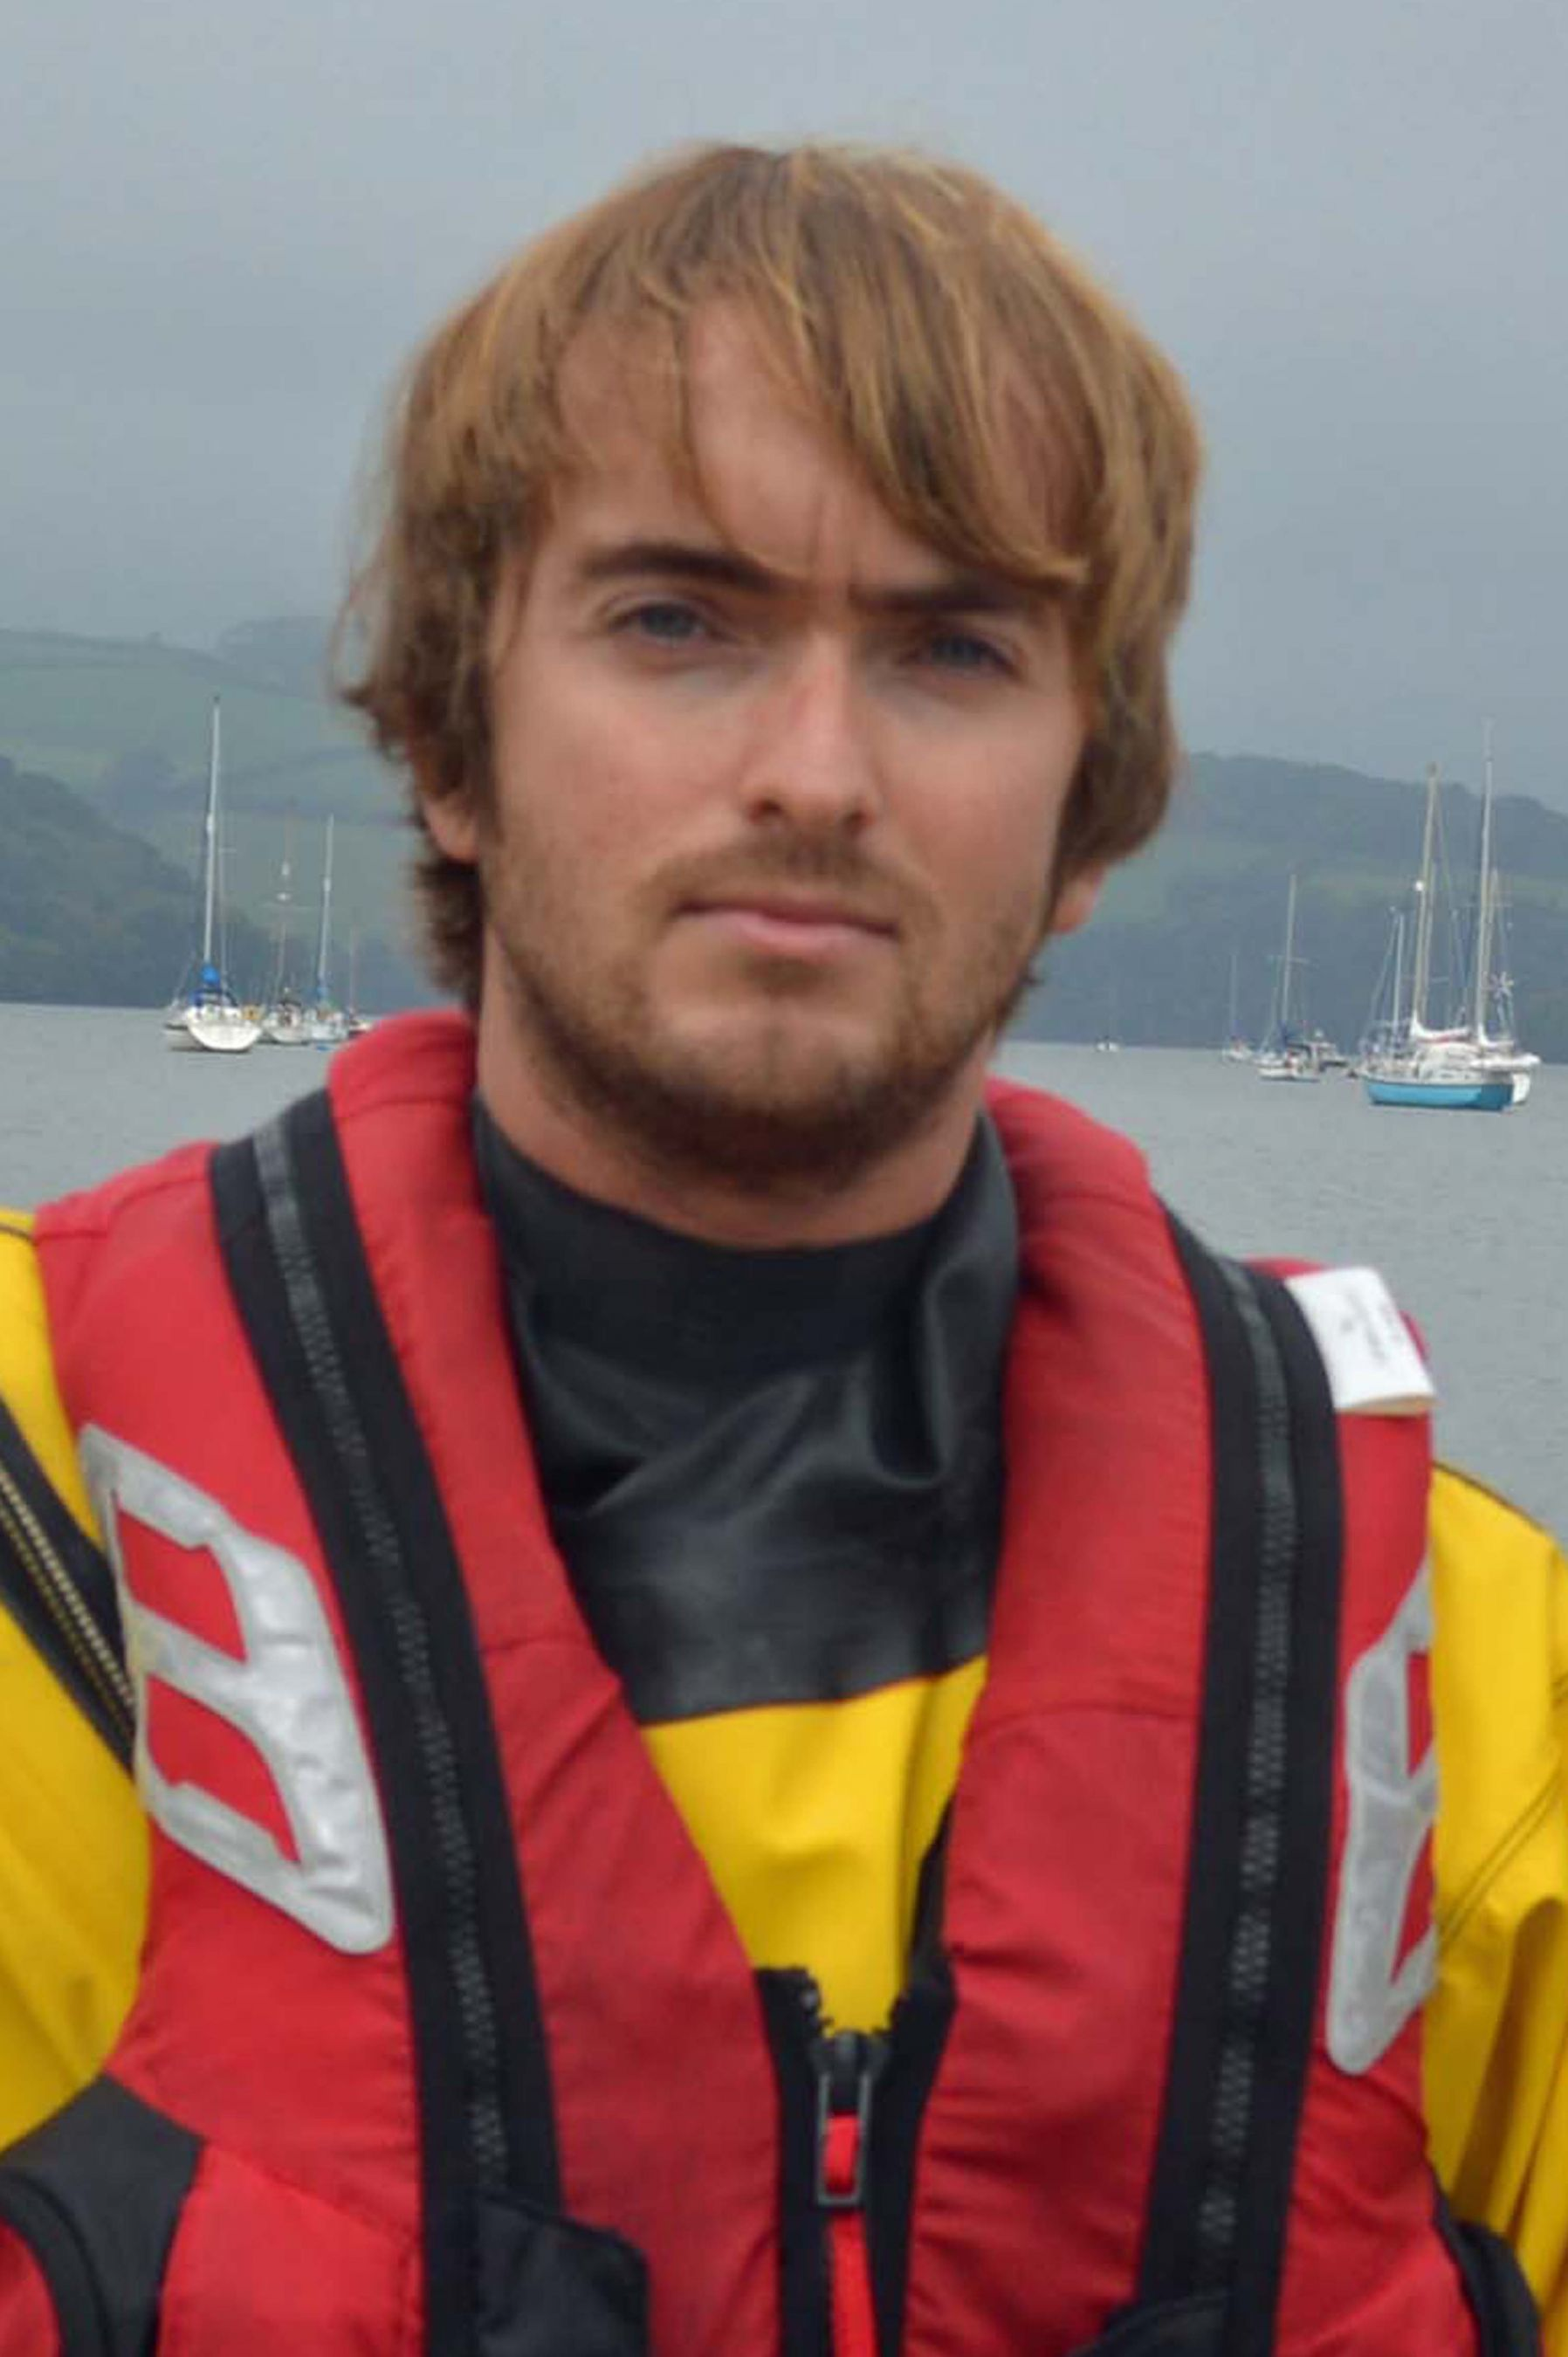 Chris Rampling. Operations team. RNLI Dart